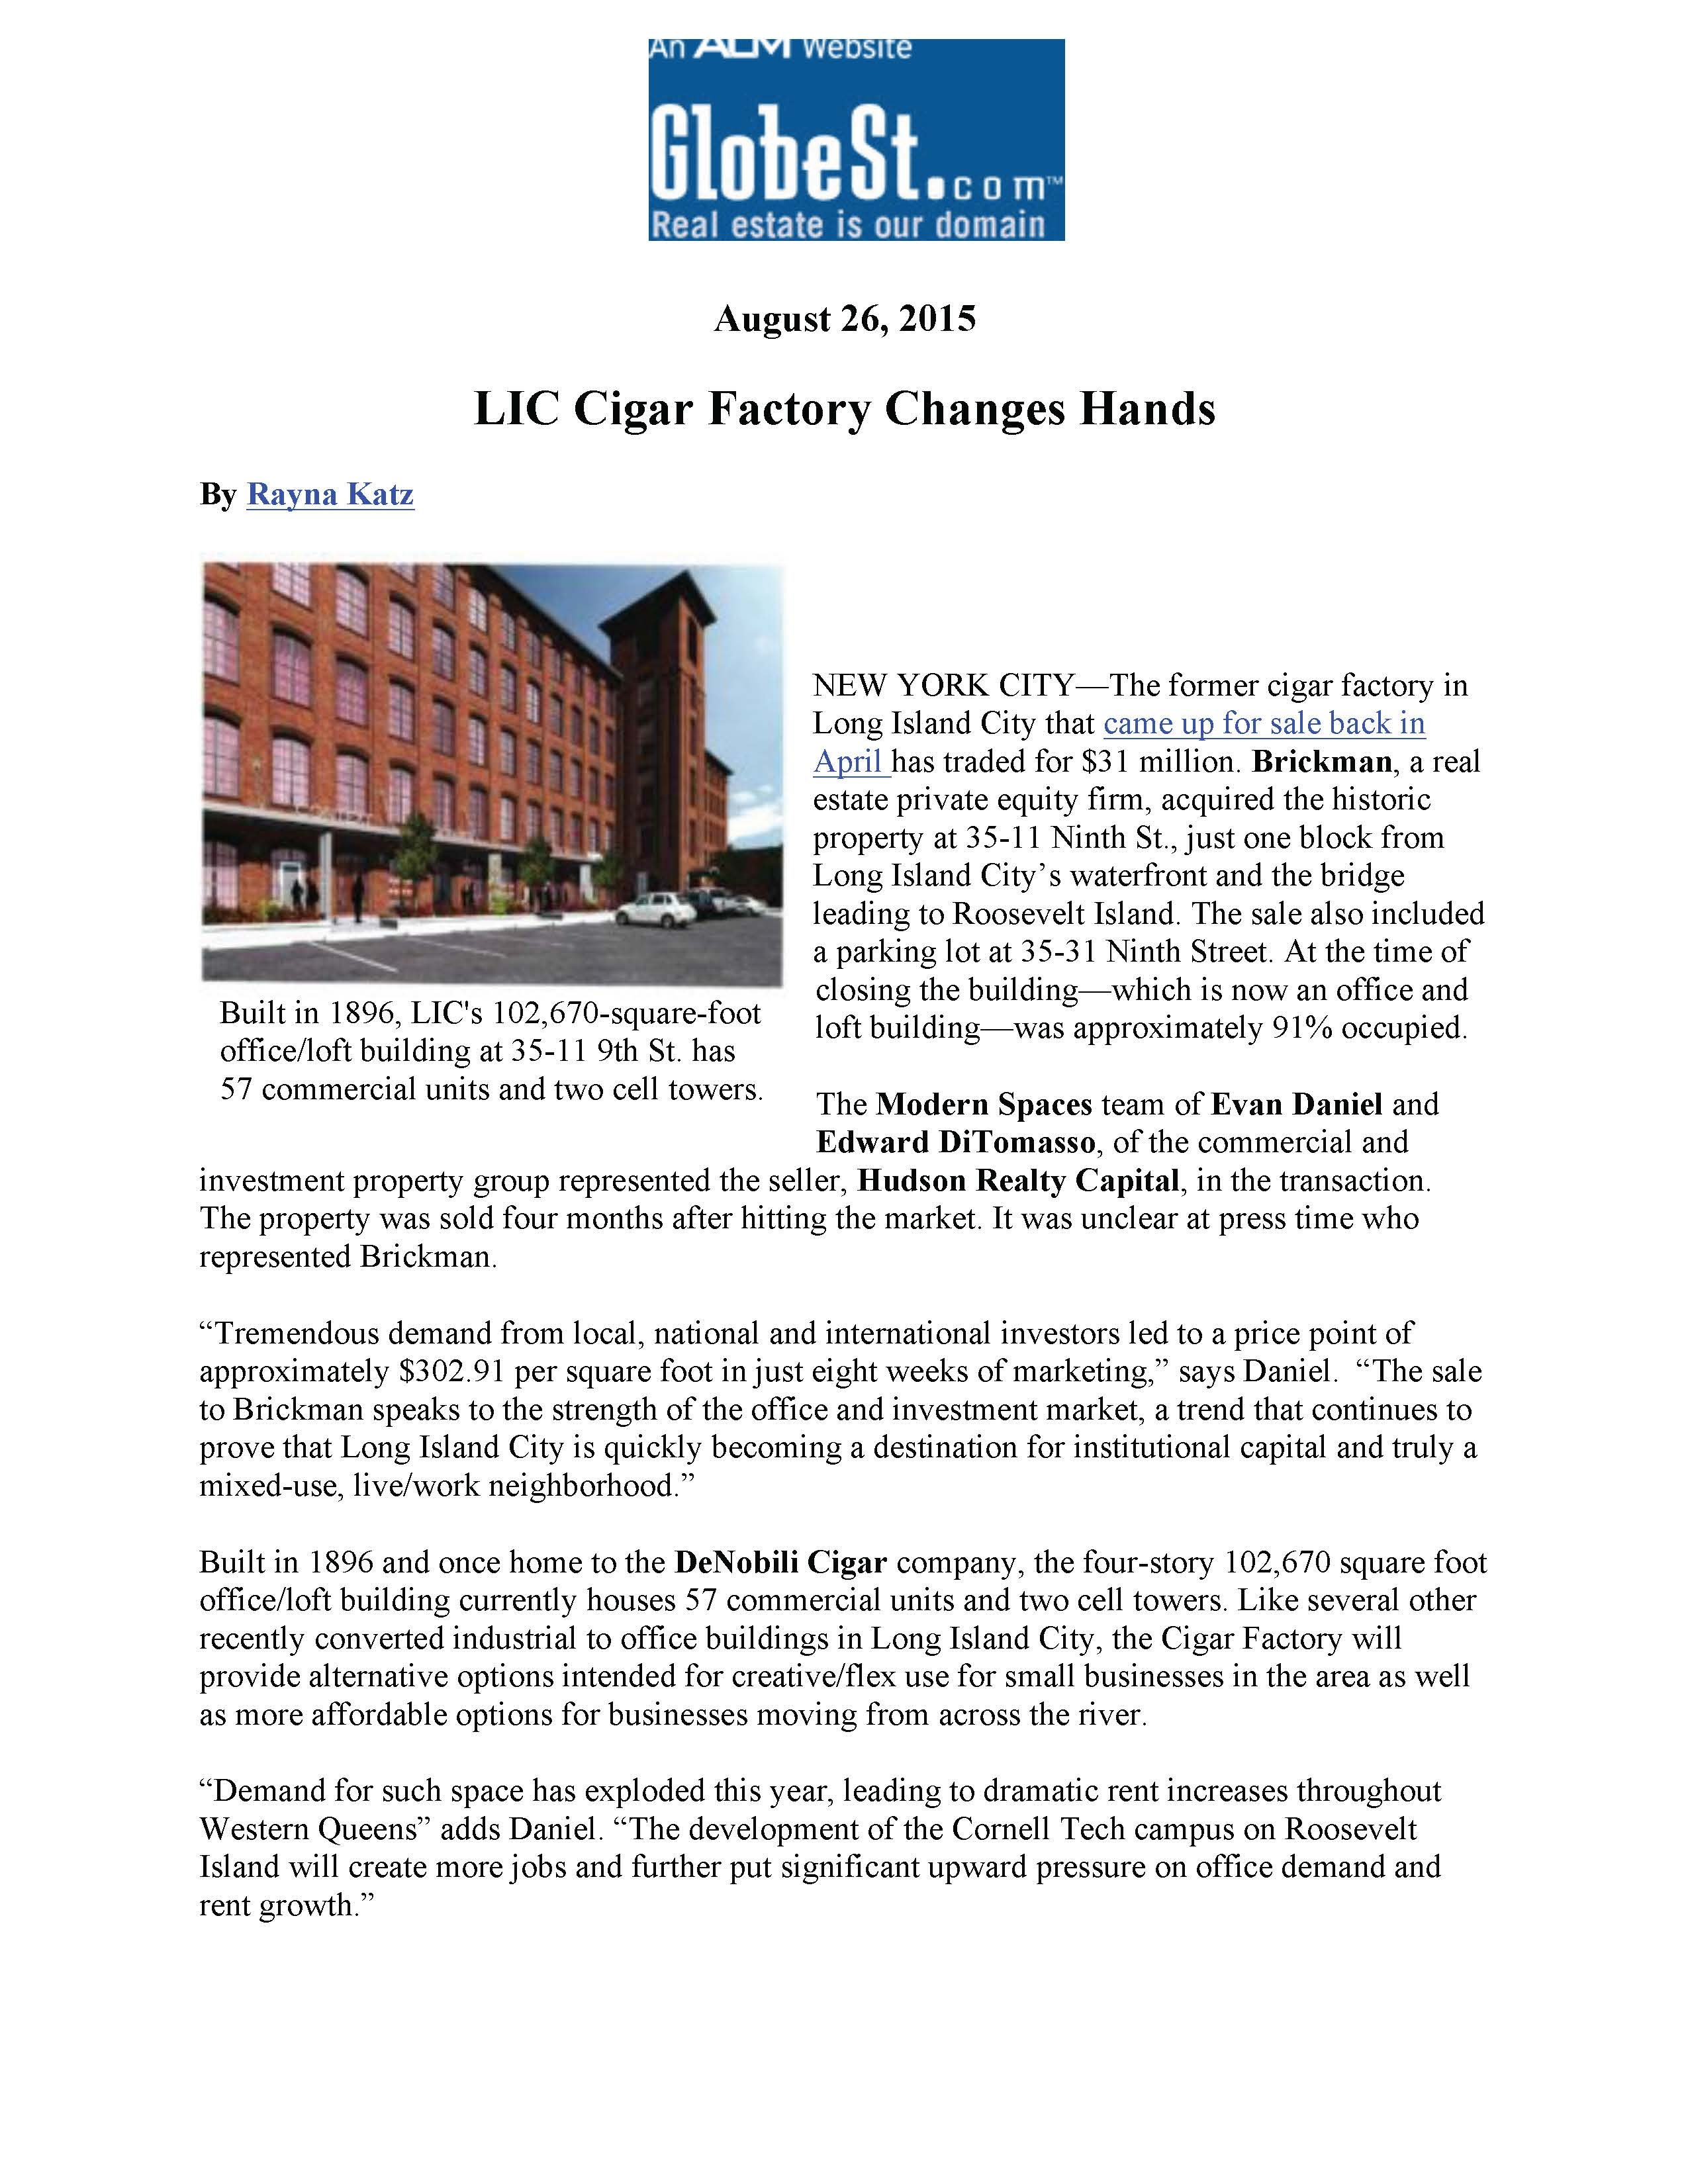 Cigar Factory Sale Globe St. 8 26 15_Page_1